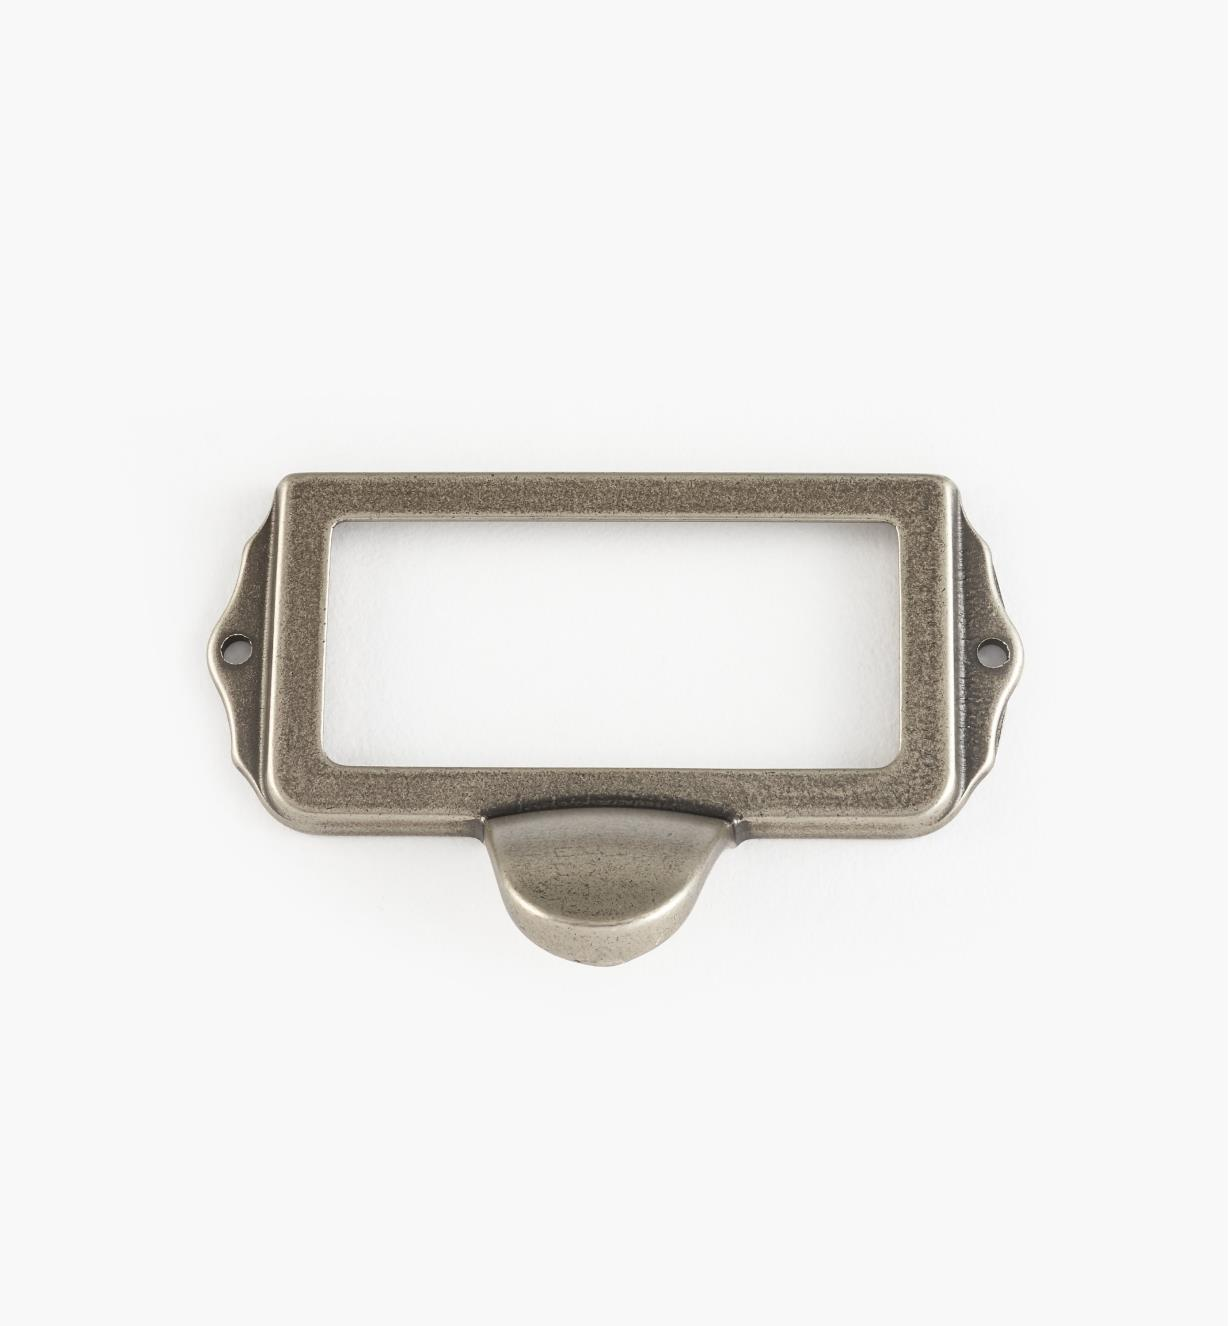 01A5754 - Pewter Card Frame Pull